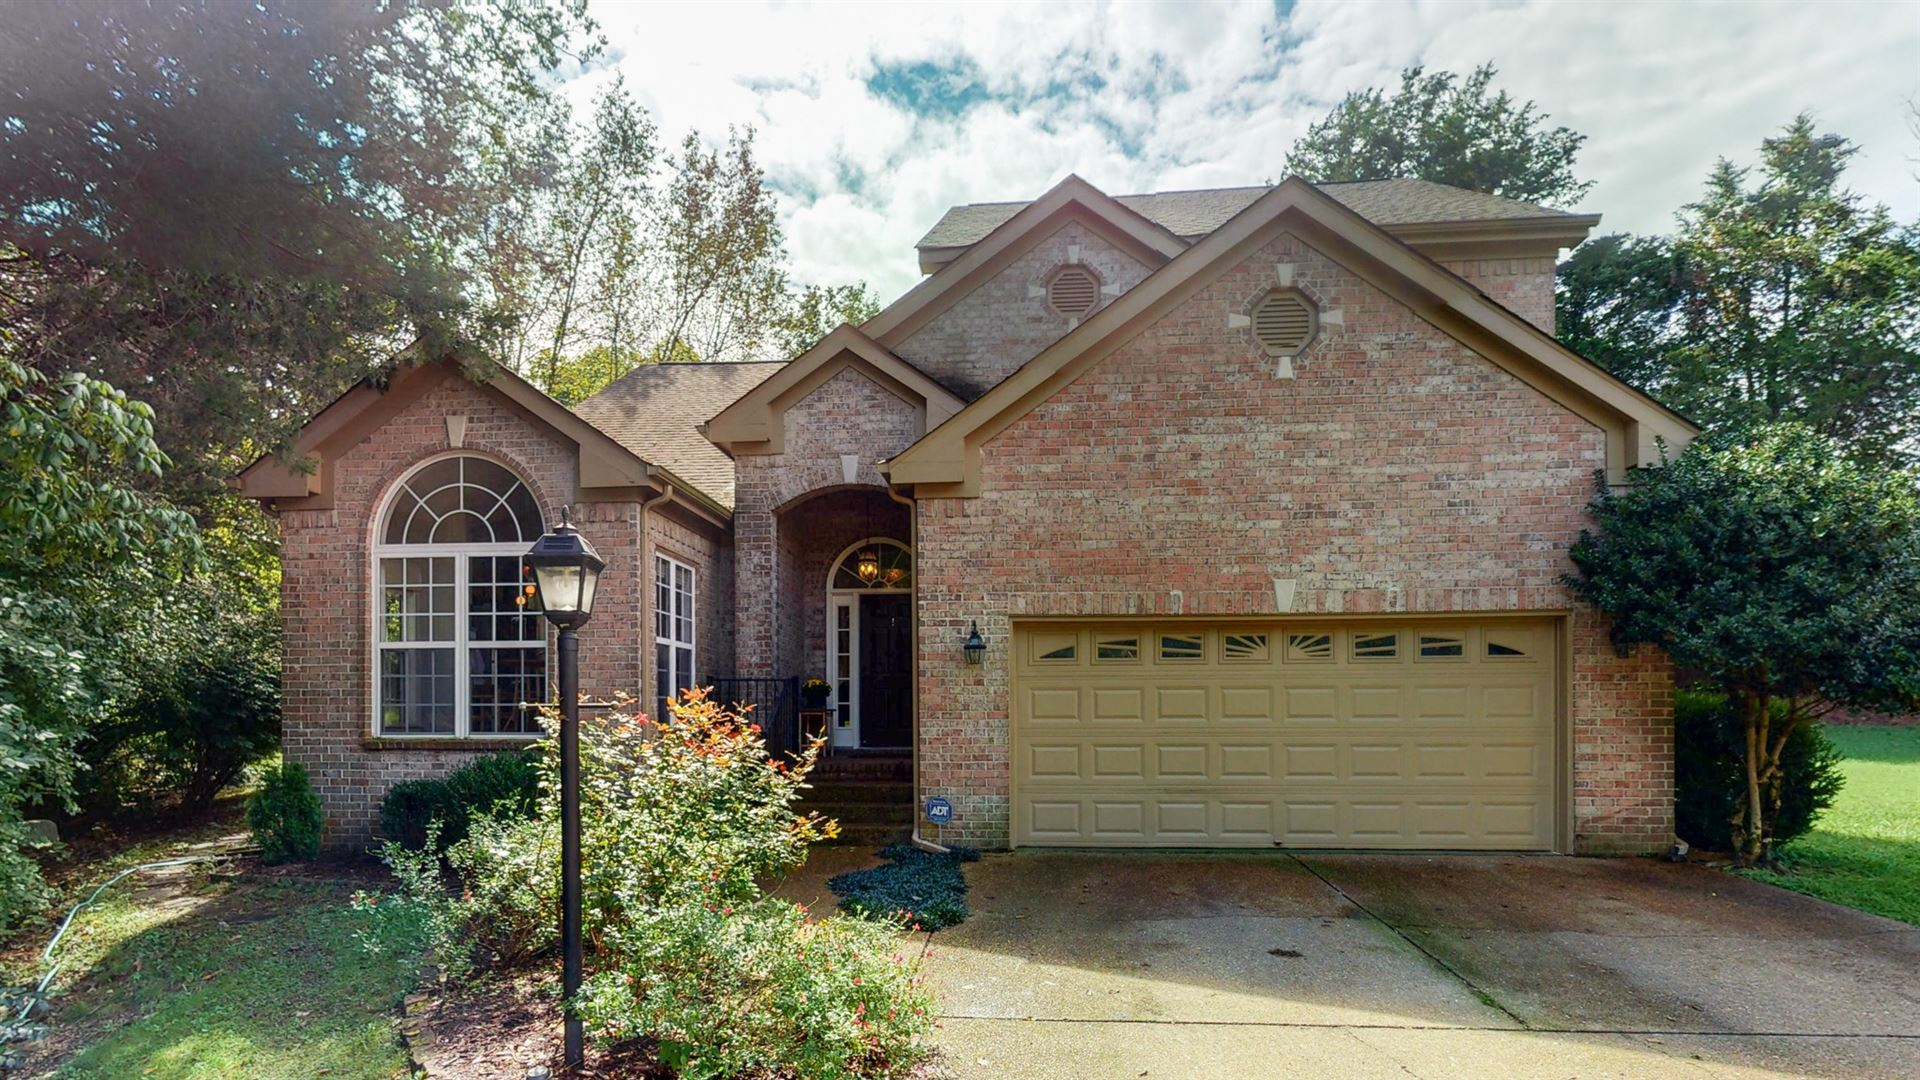 Photo of 348 Red Feather Ln, Brentwood, TN 37027 (MLS # 2293199)